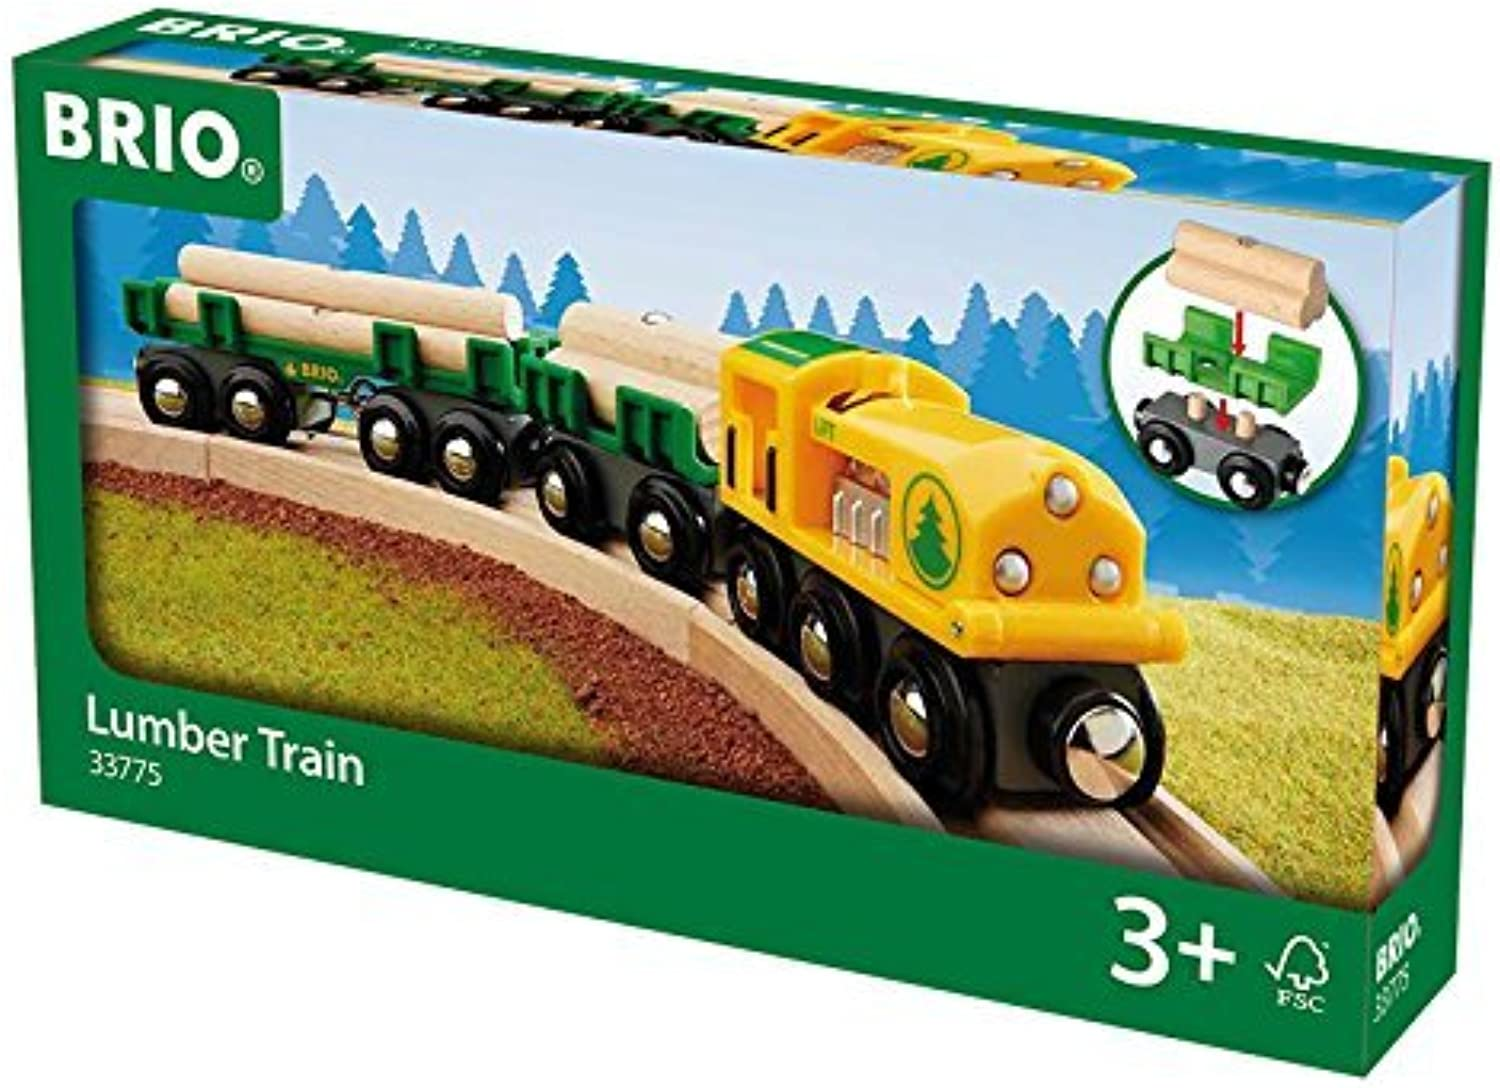 BRIO Lumber Train by Brio